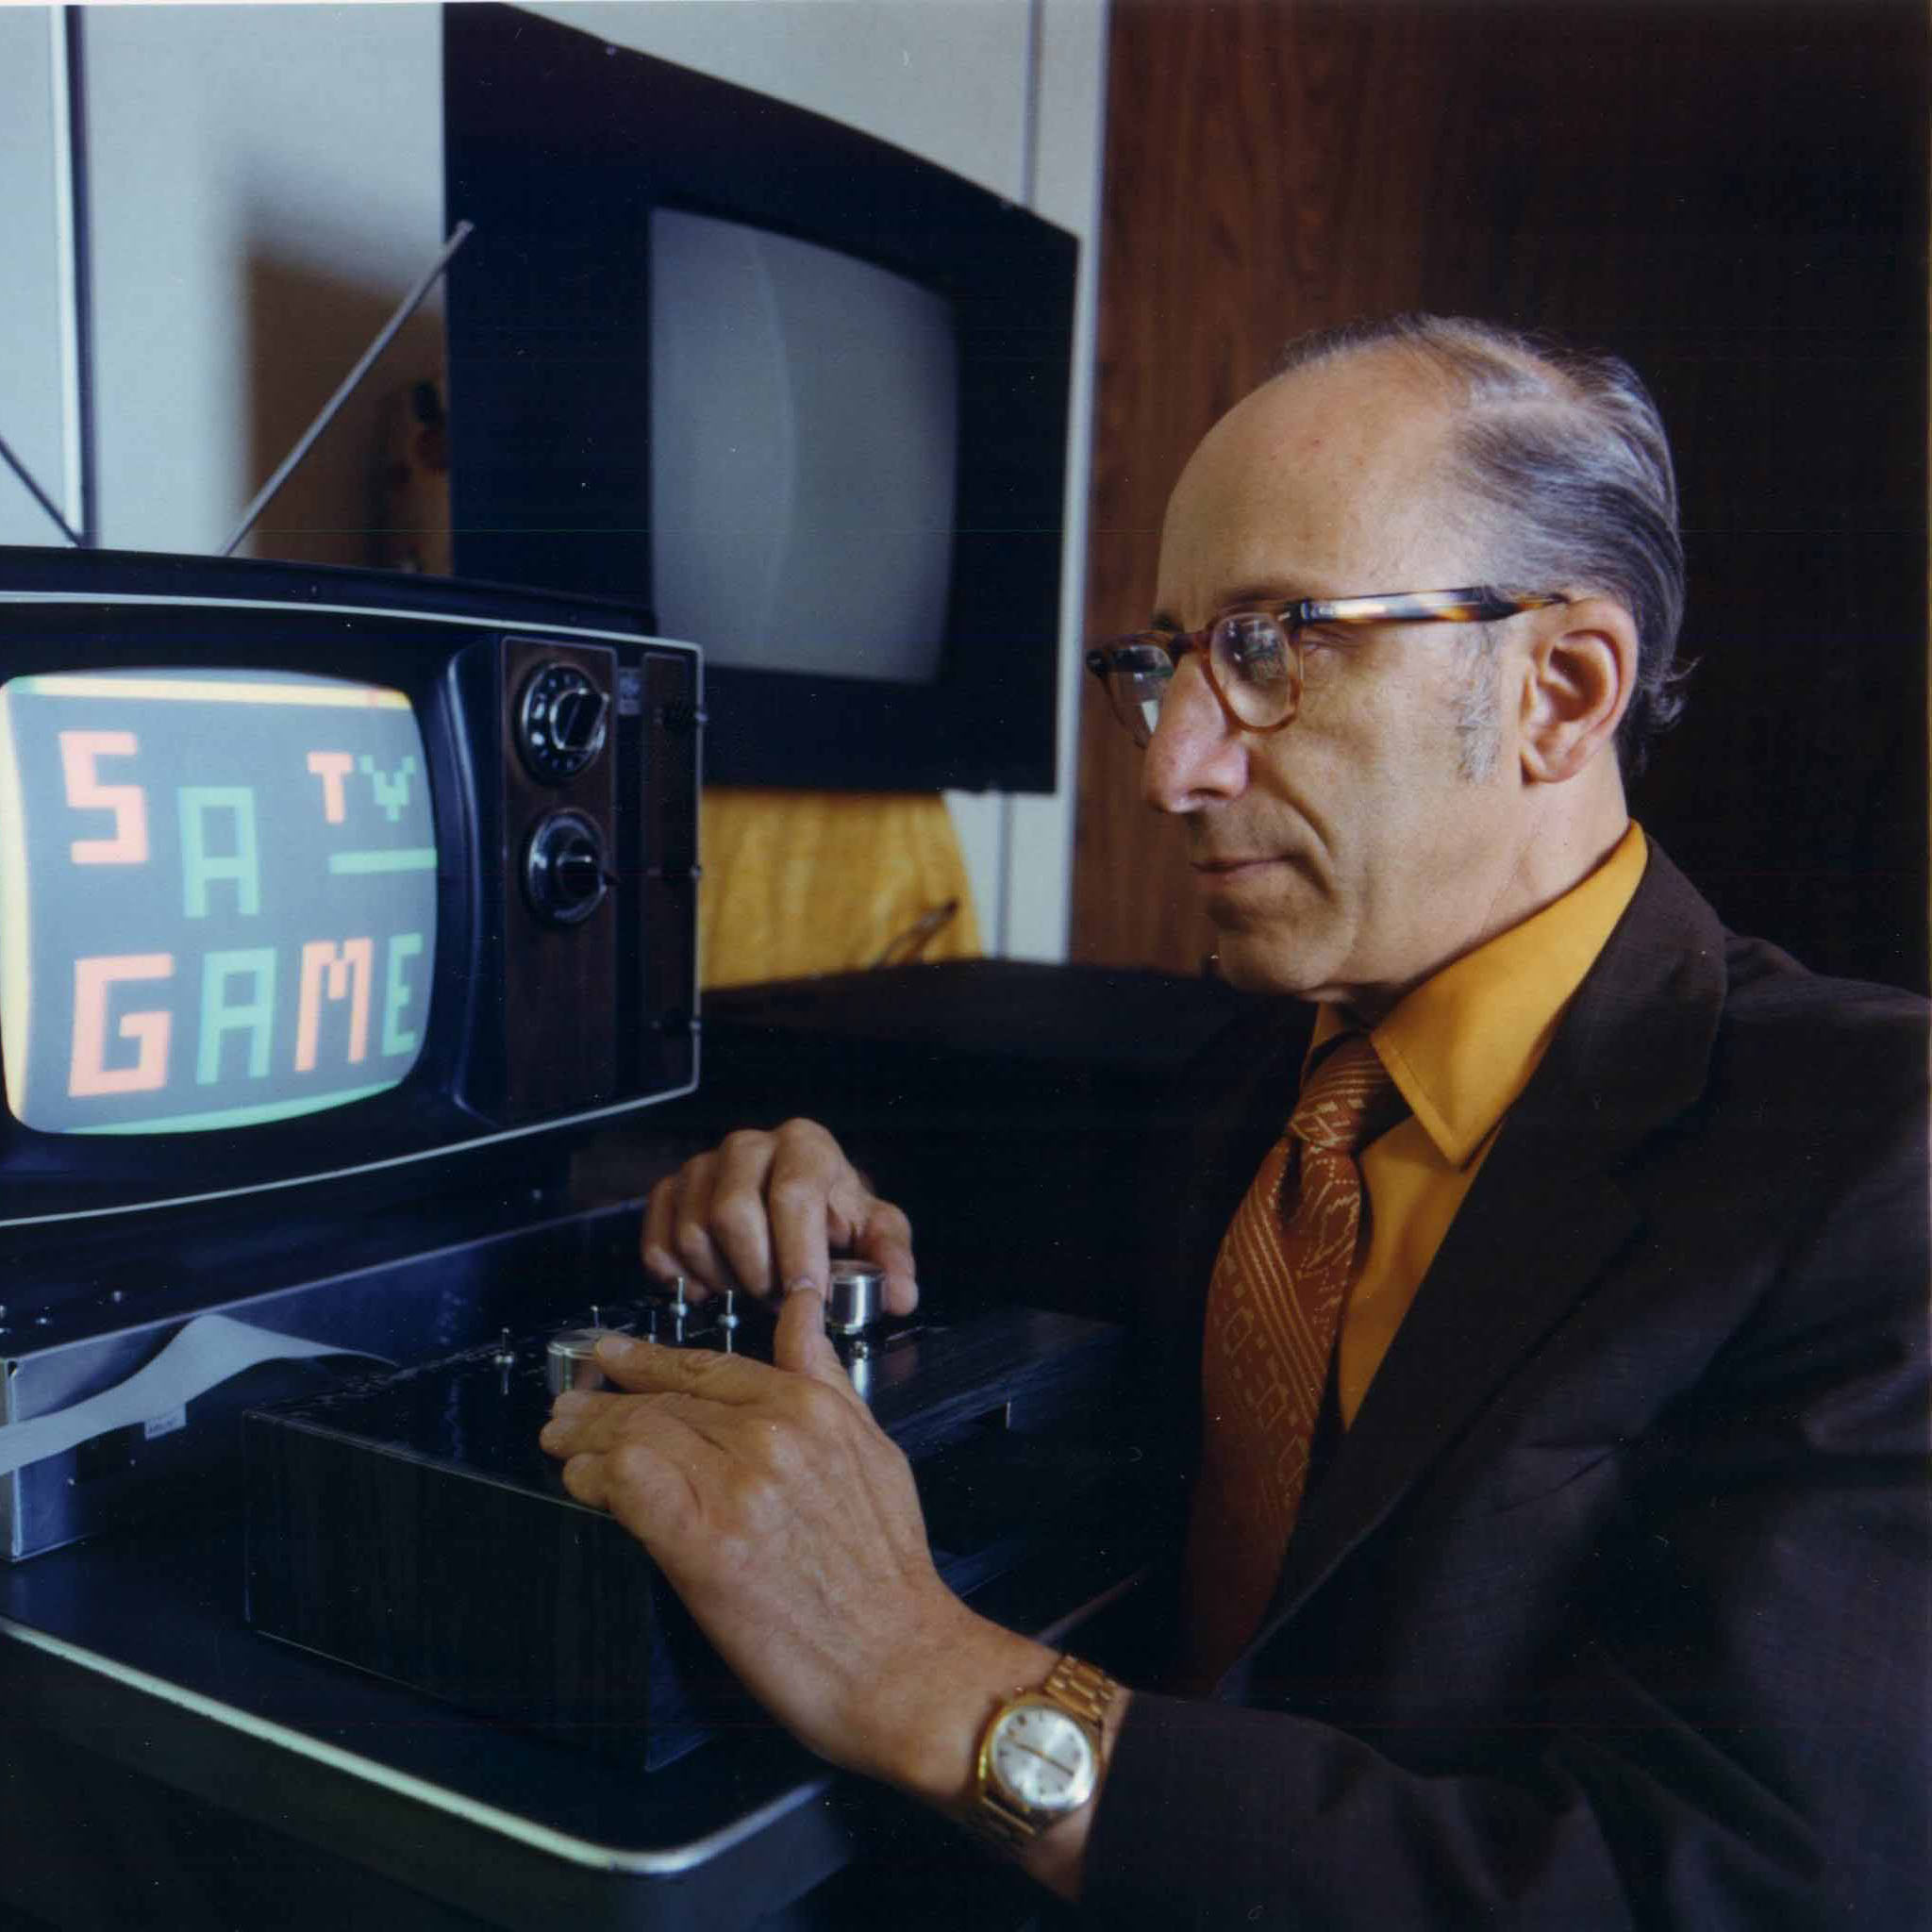 Ralph Baer plays his Telesketch game, 1977.